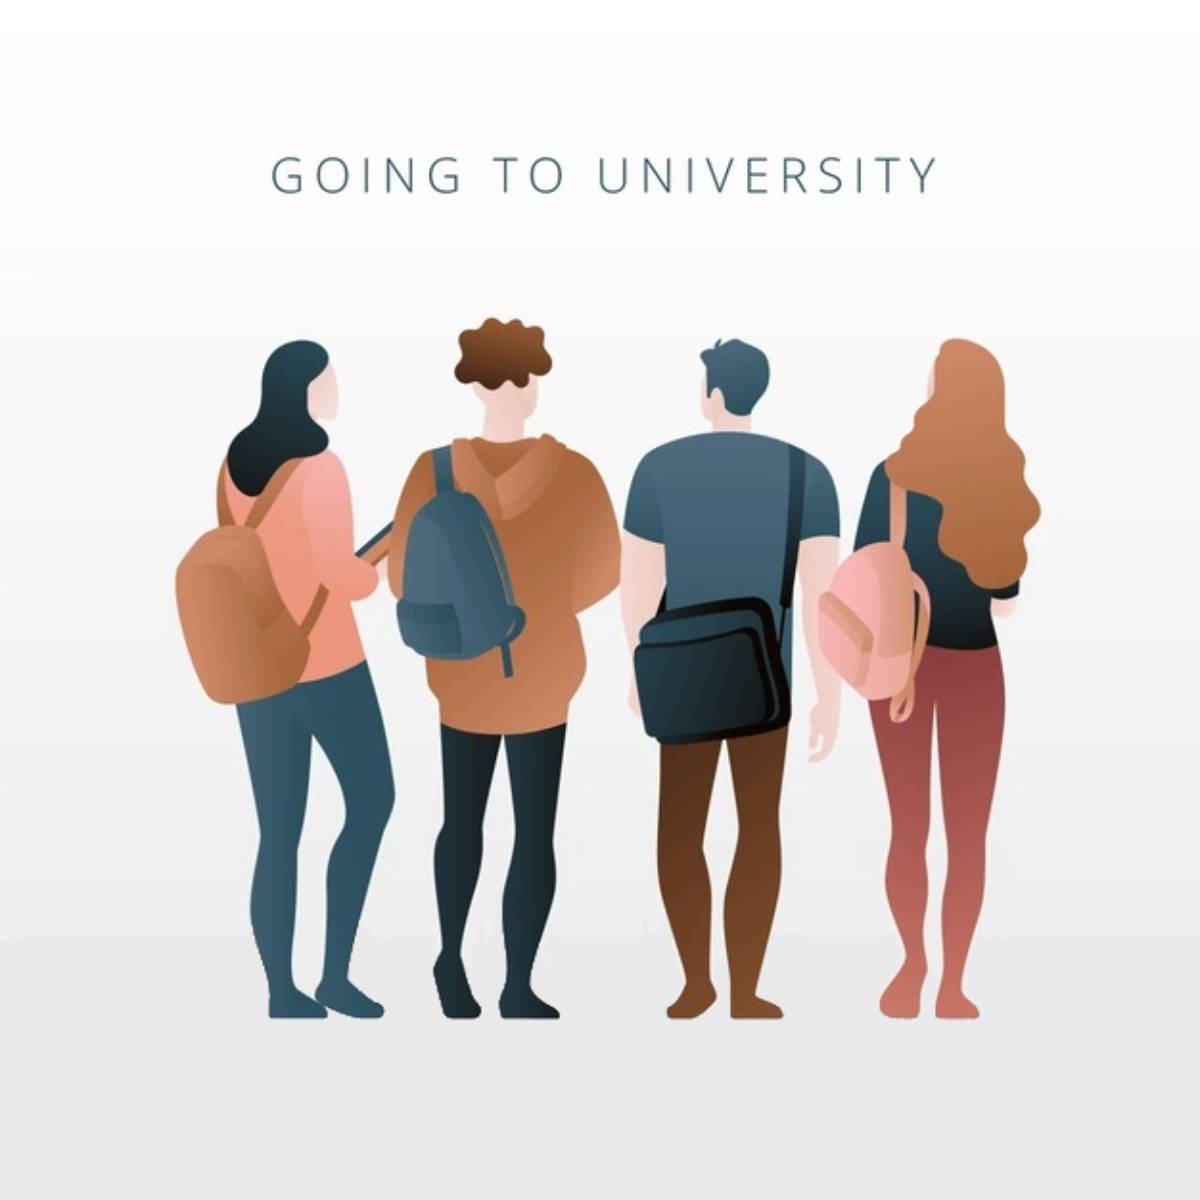 15 Helpful Advice for Students Starting University - Freshman Guide 4 - Daily Medicos